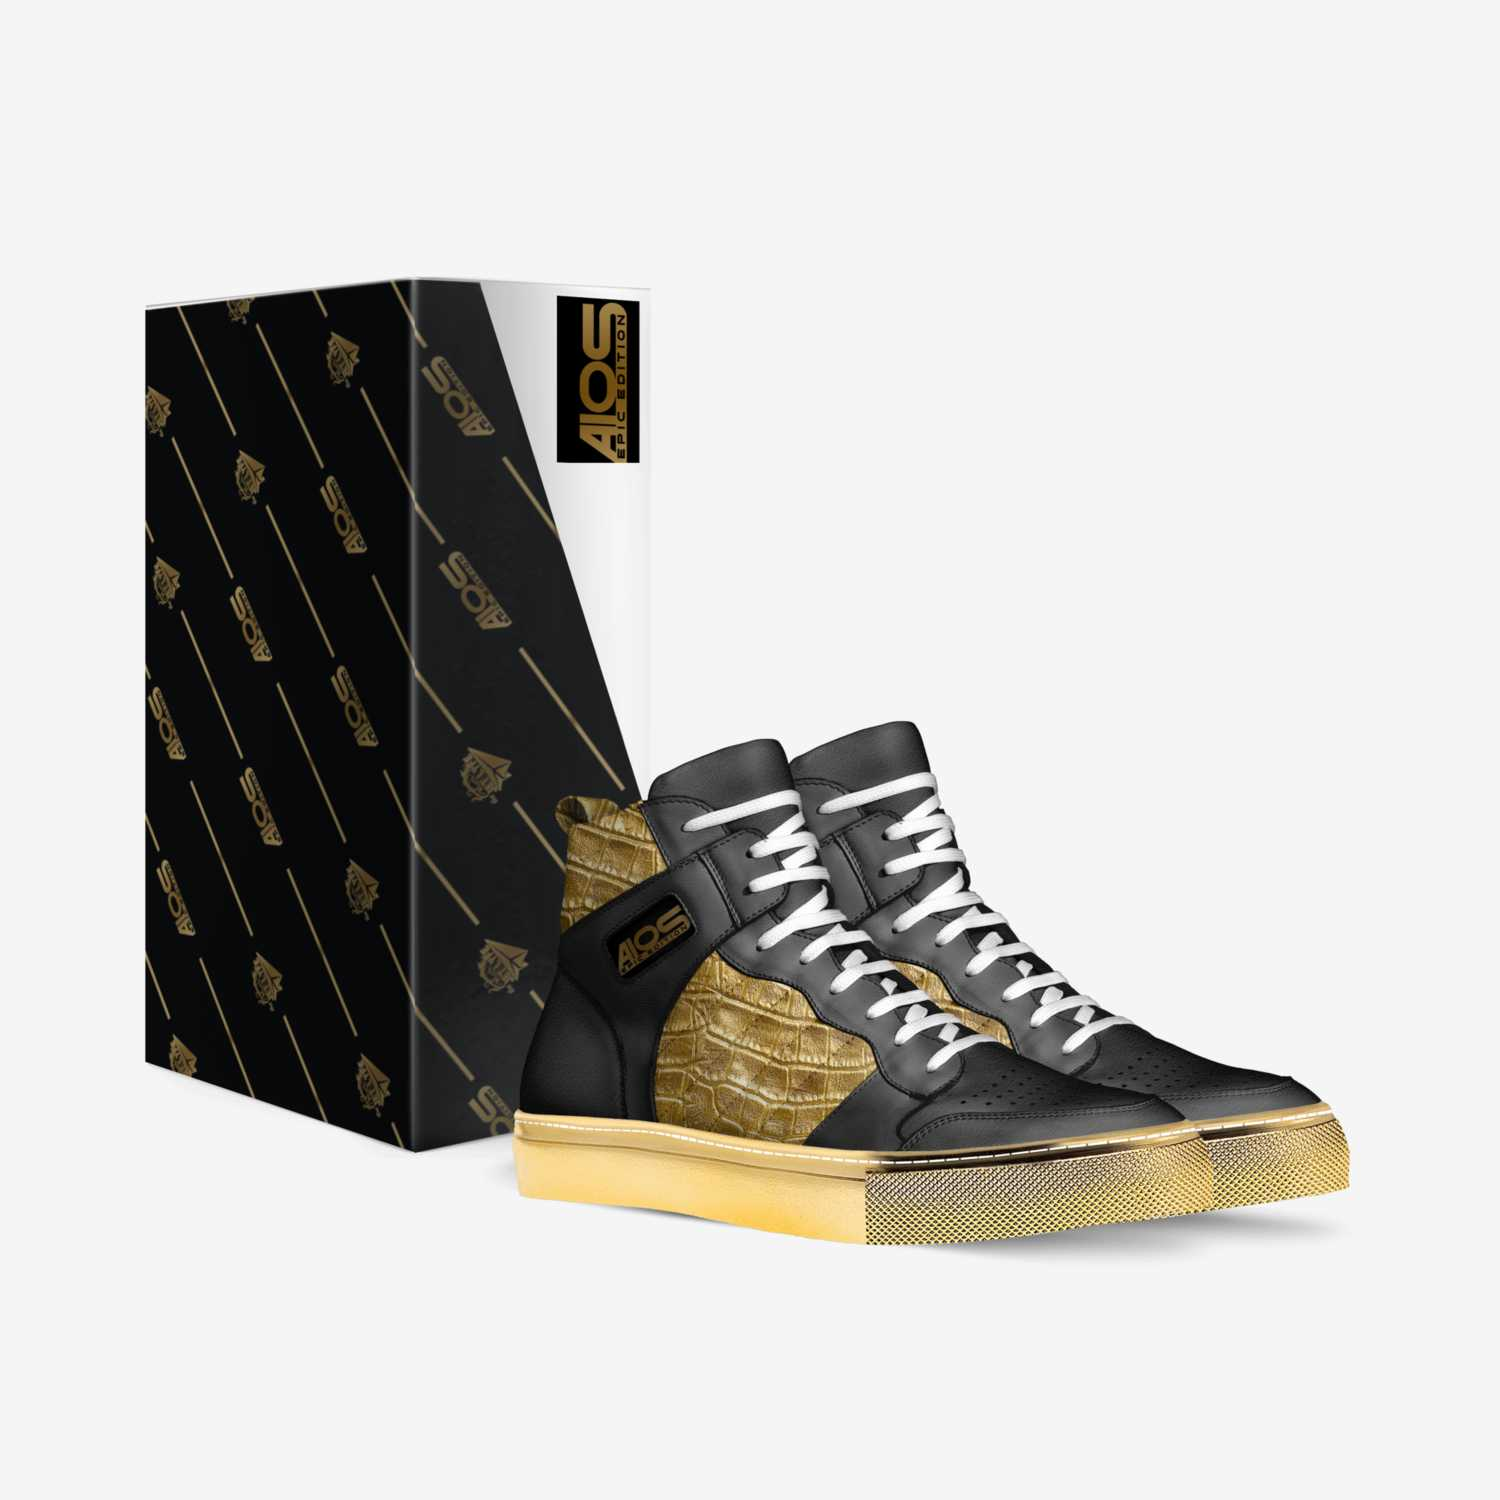 A10s- Epic Edition custom made in Italy shoes by Antonio Holloman | Box view